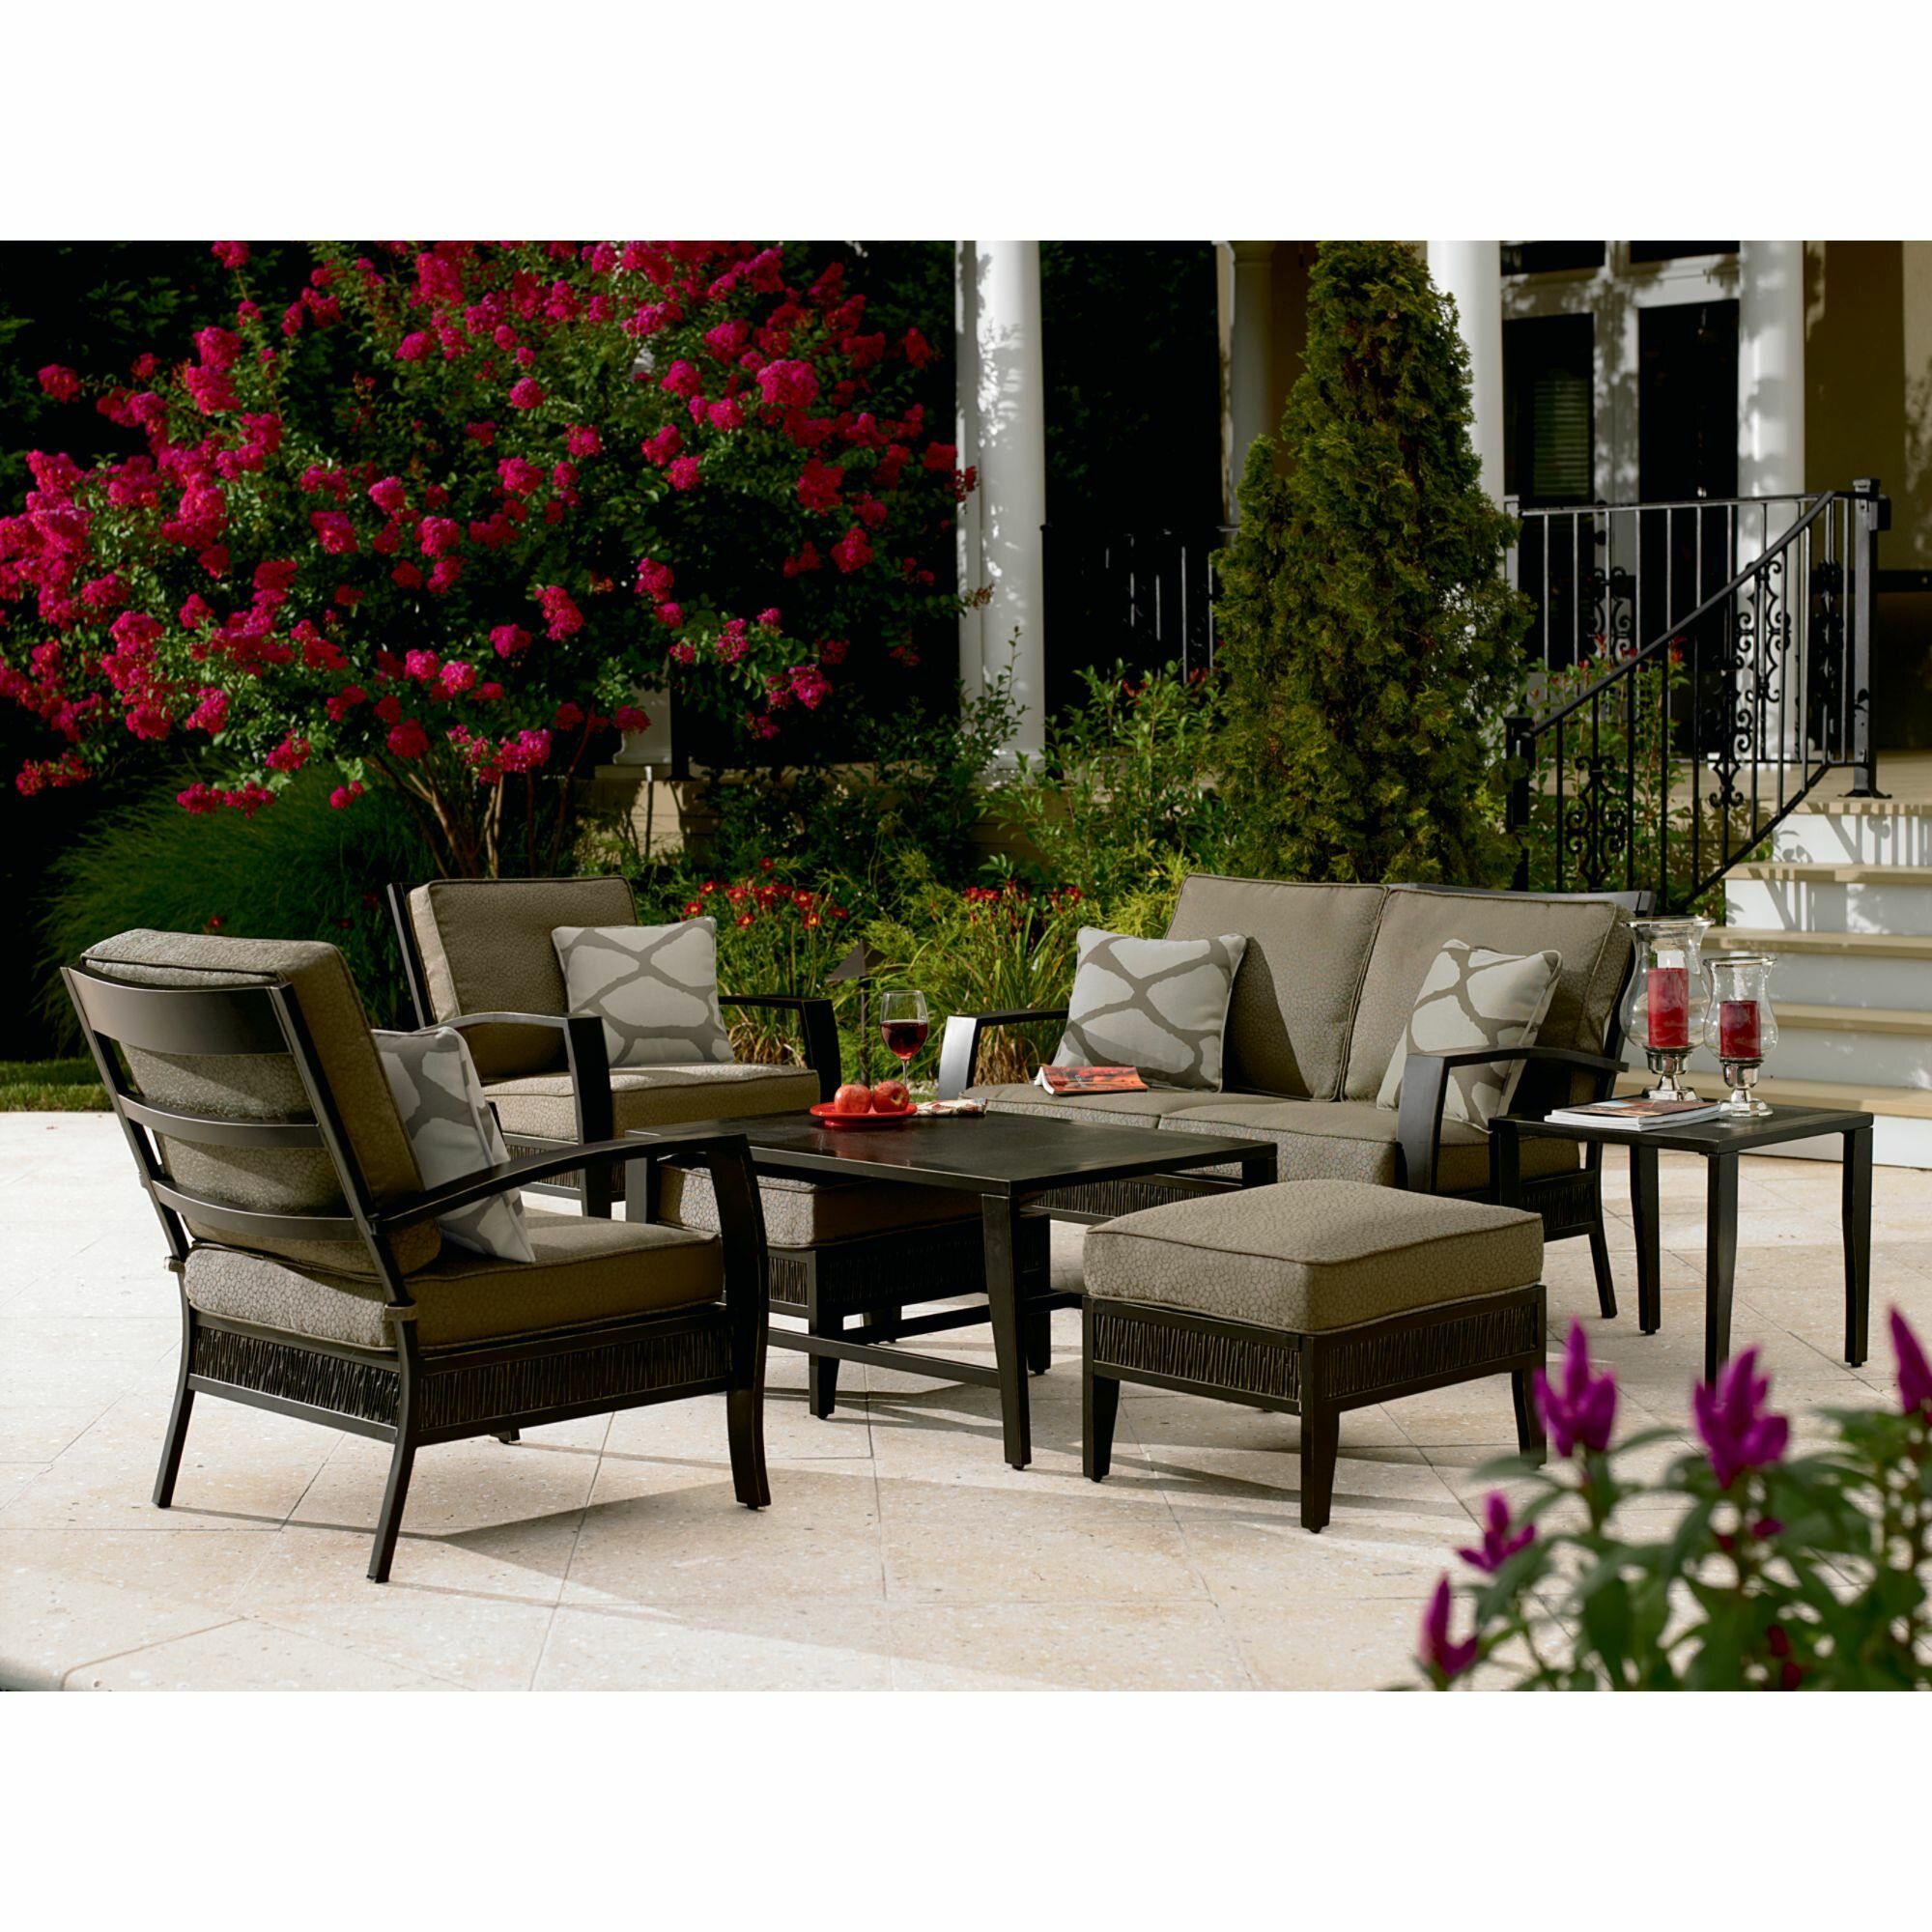 30 Luxury Menards Patio Furniture Clearance